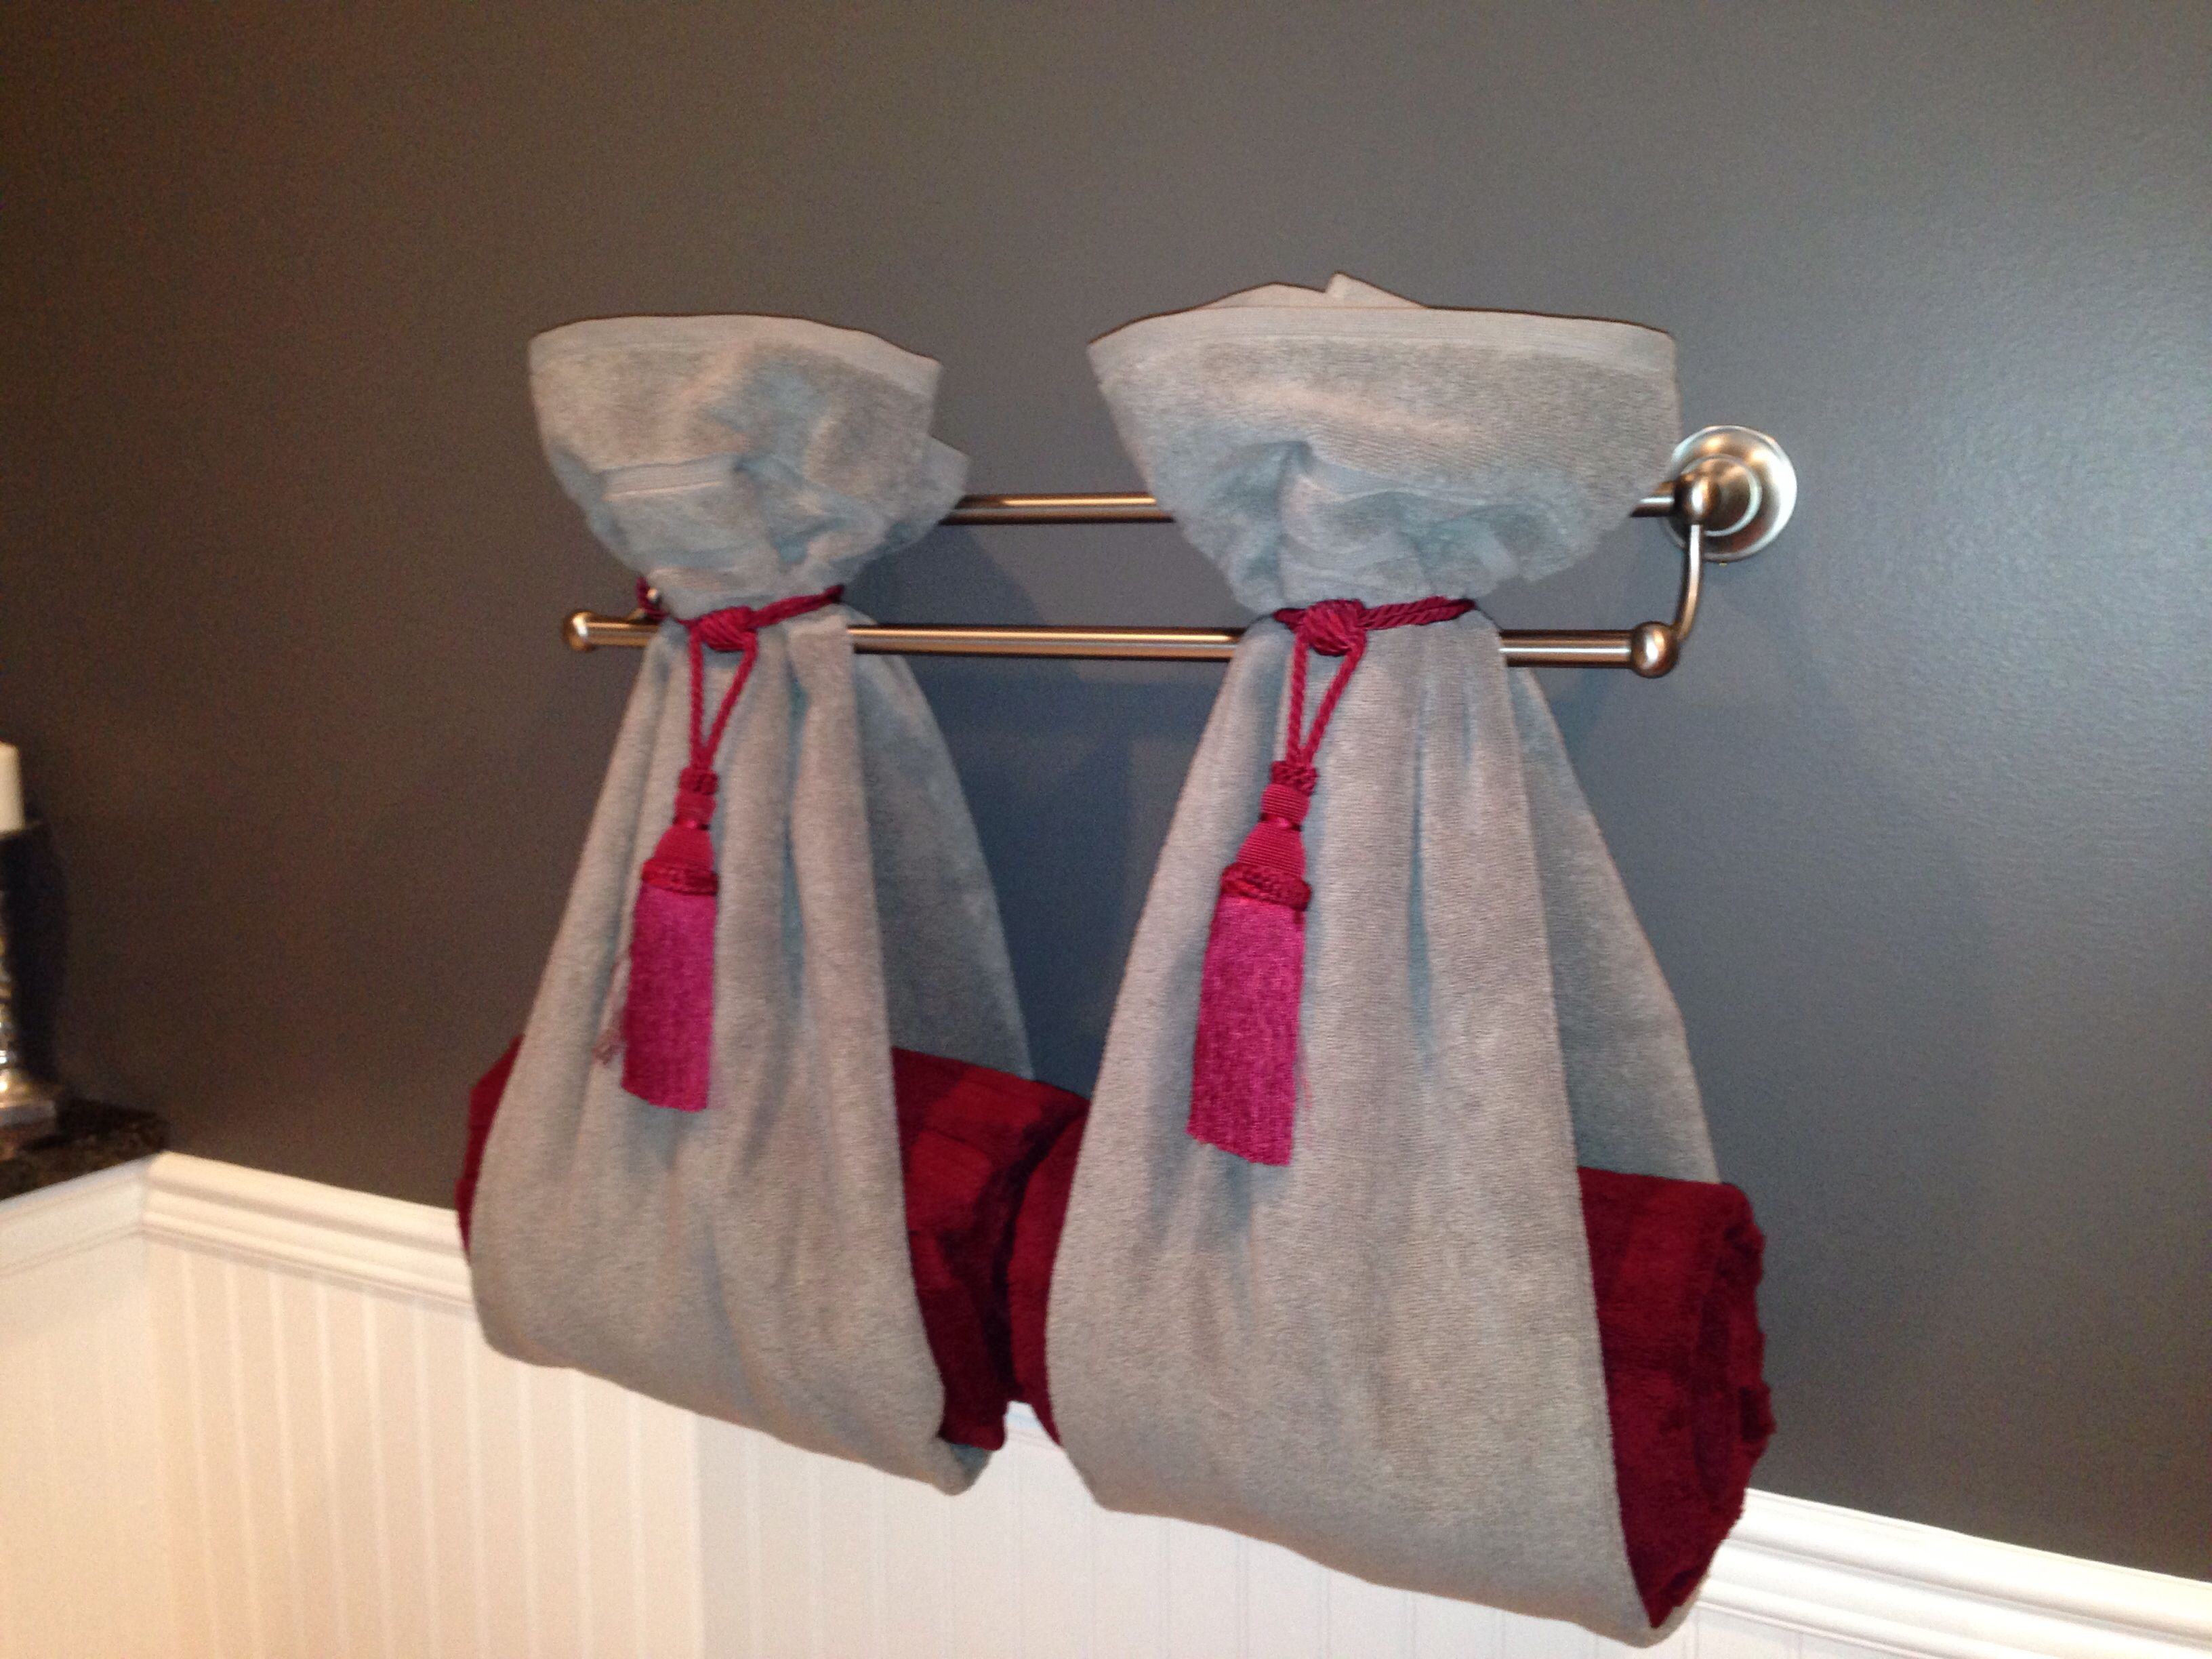 A different way to hang towels, using curtain tie-backs ...